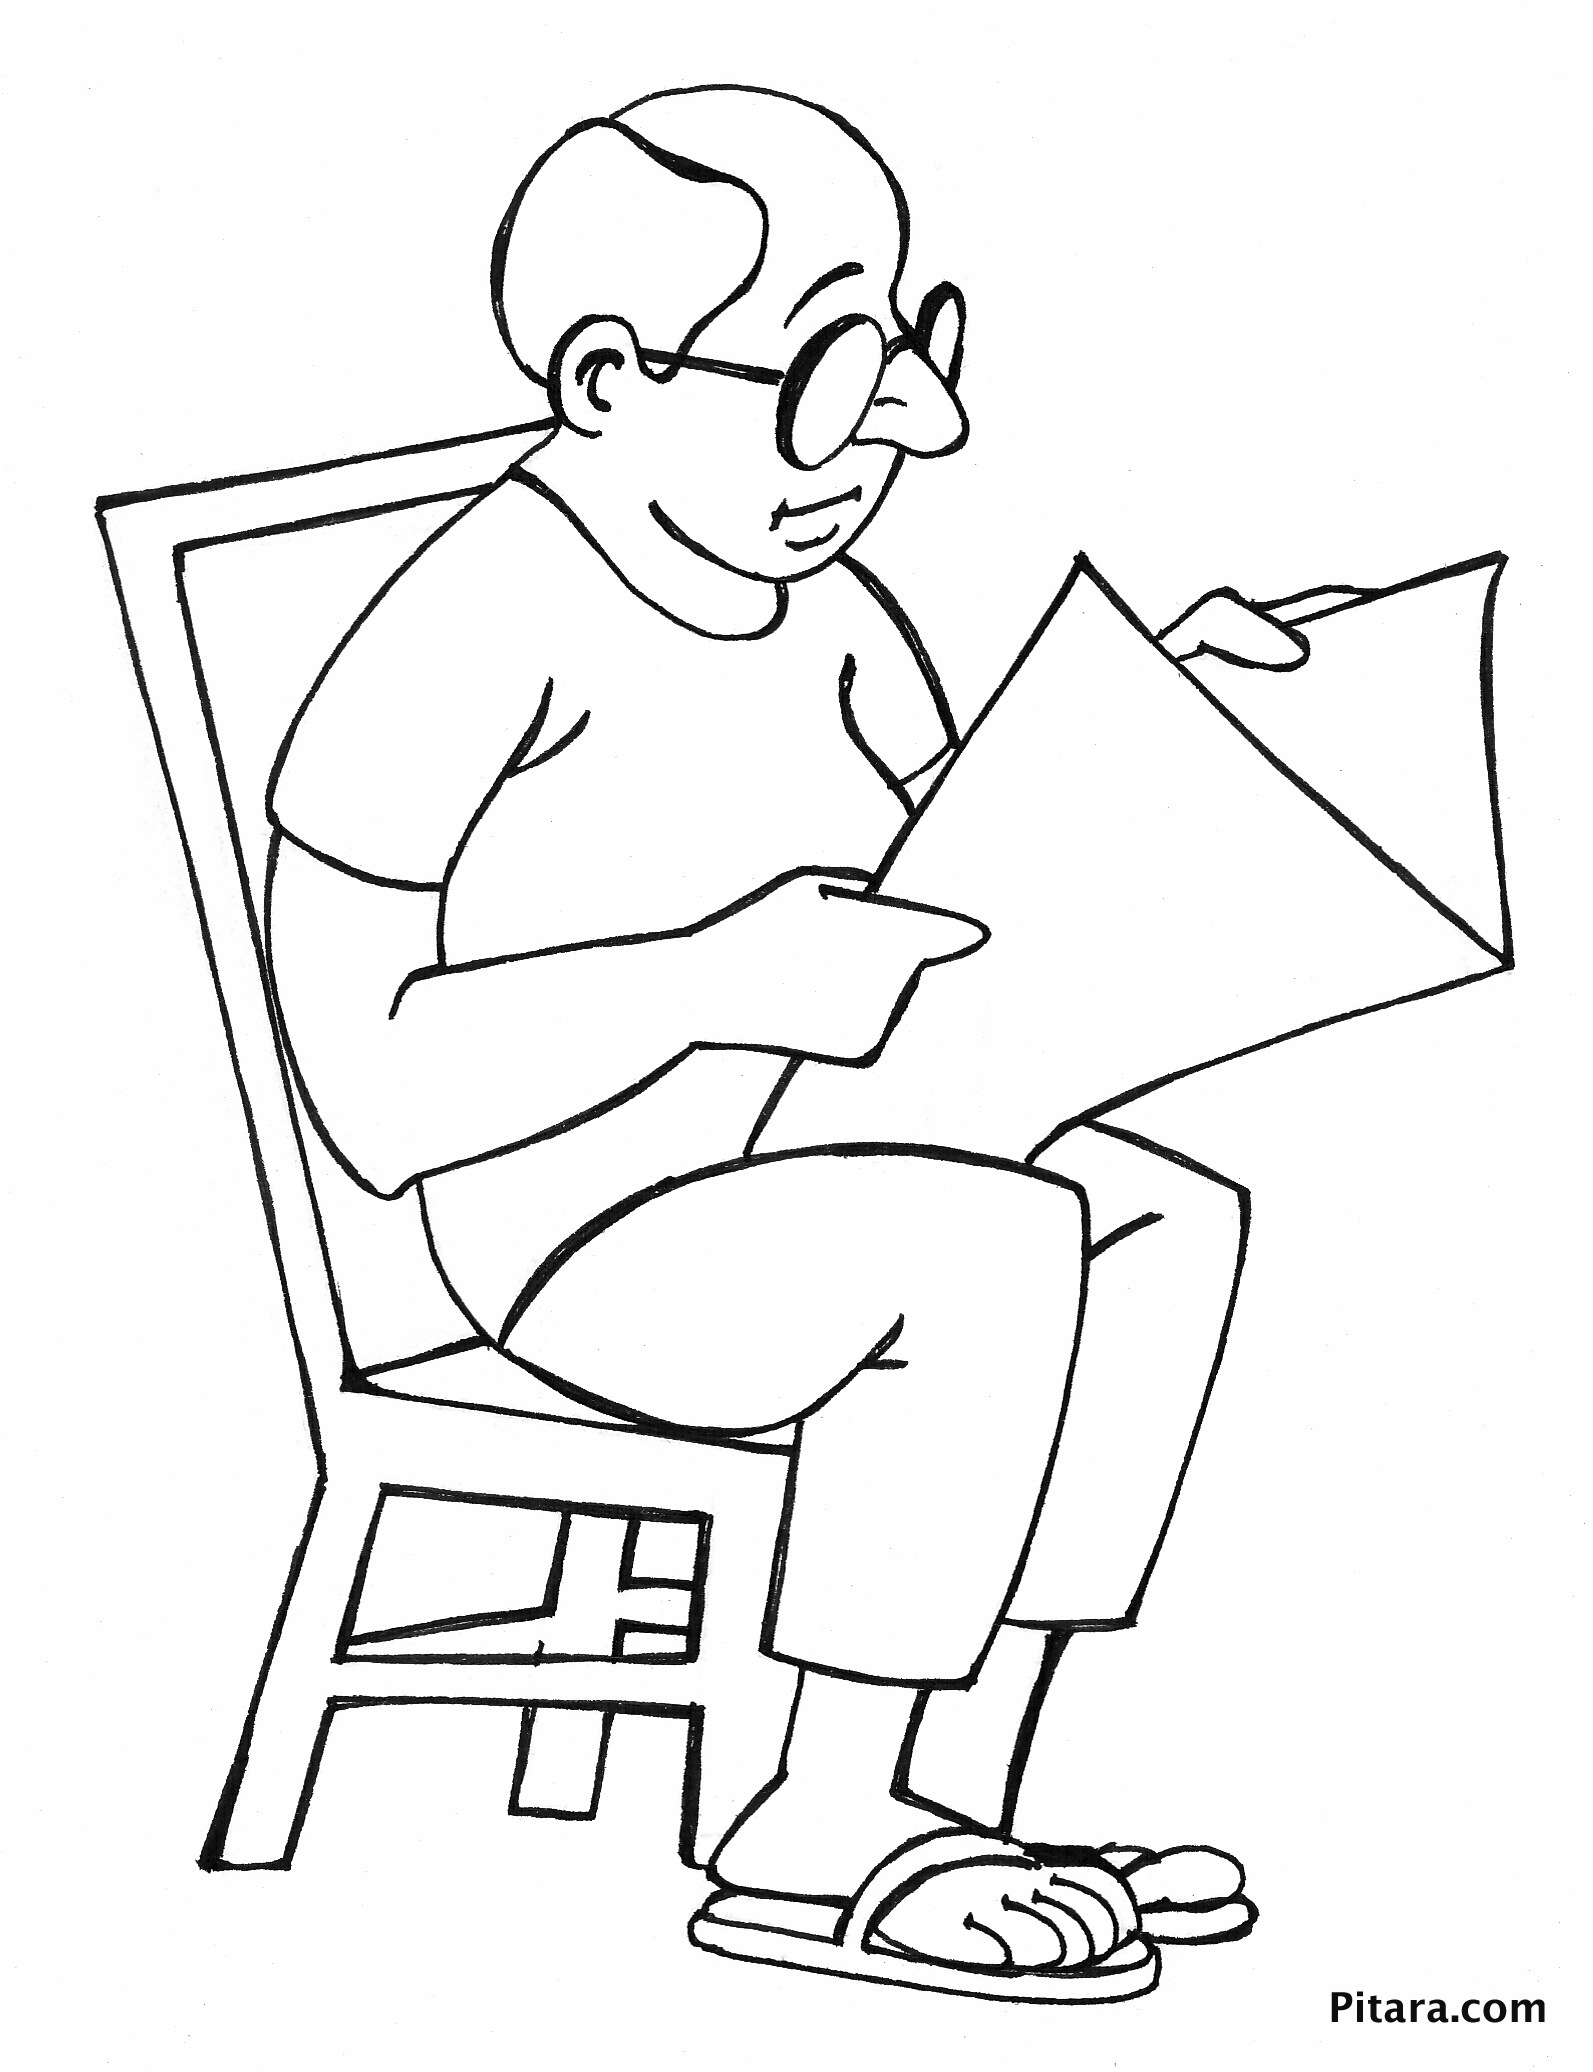 Reading newspaper – Coloring page